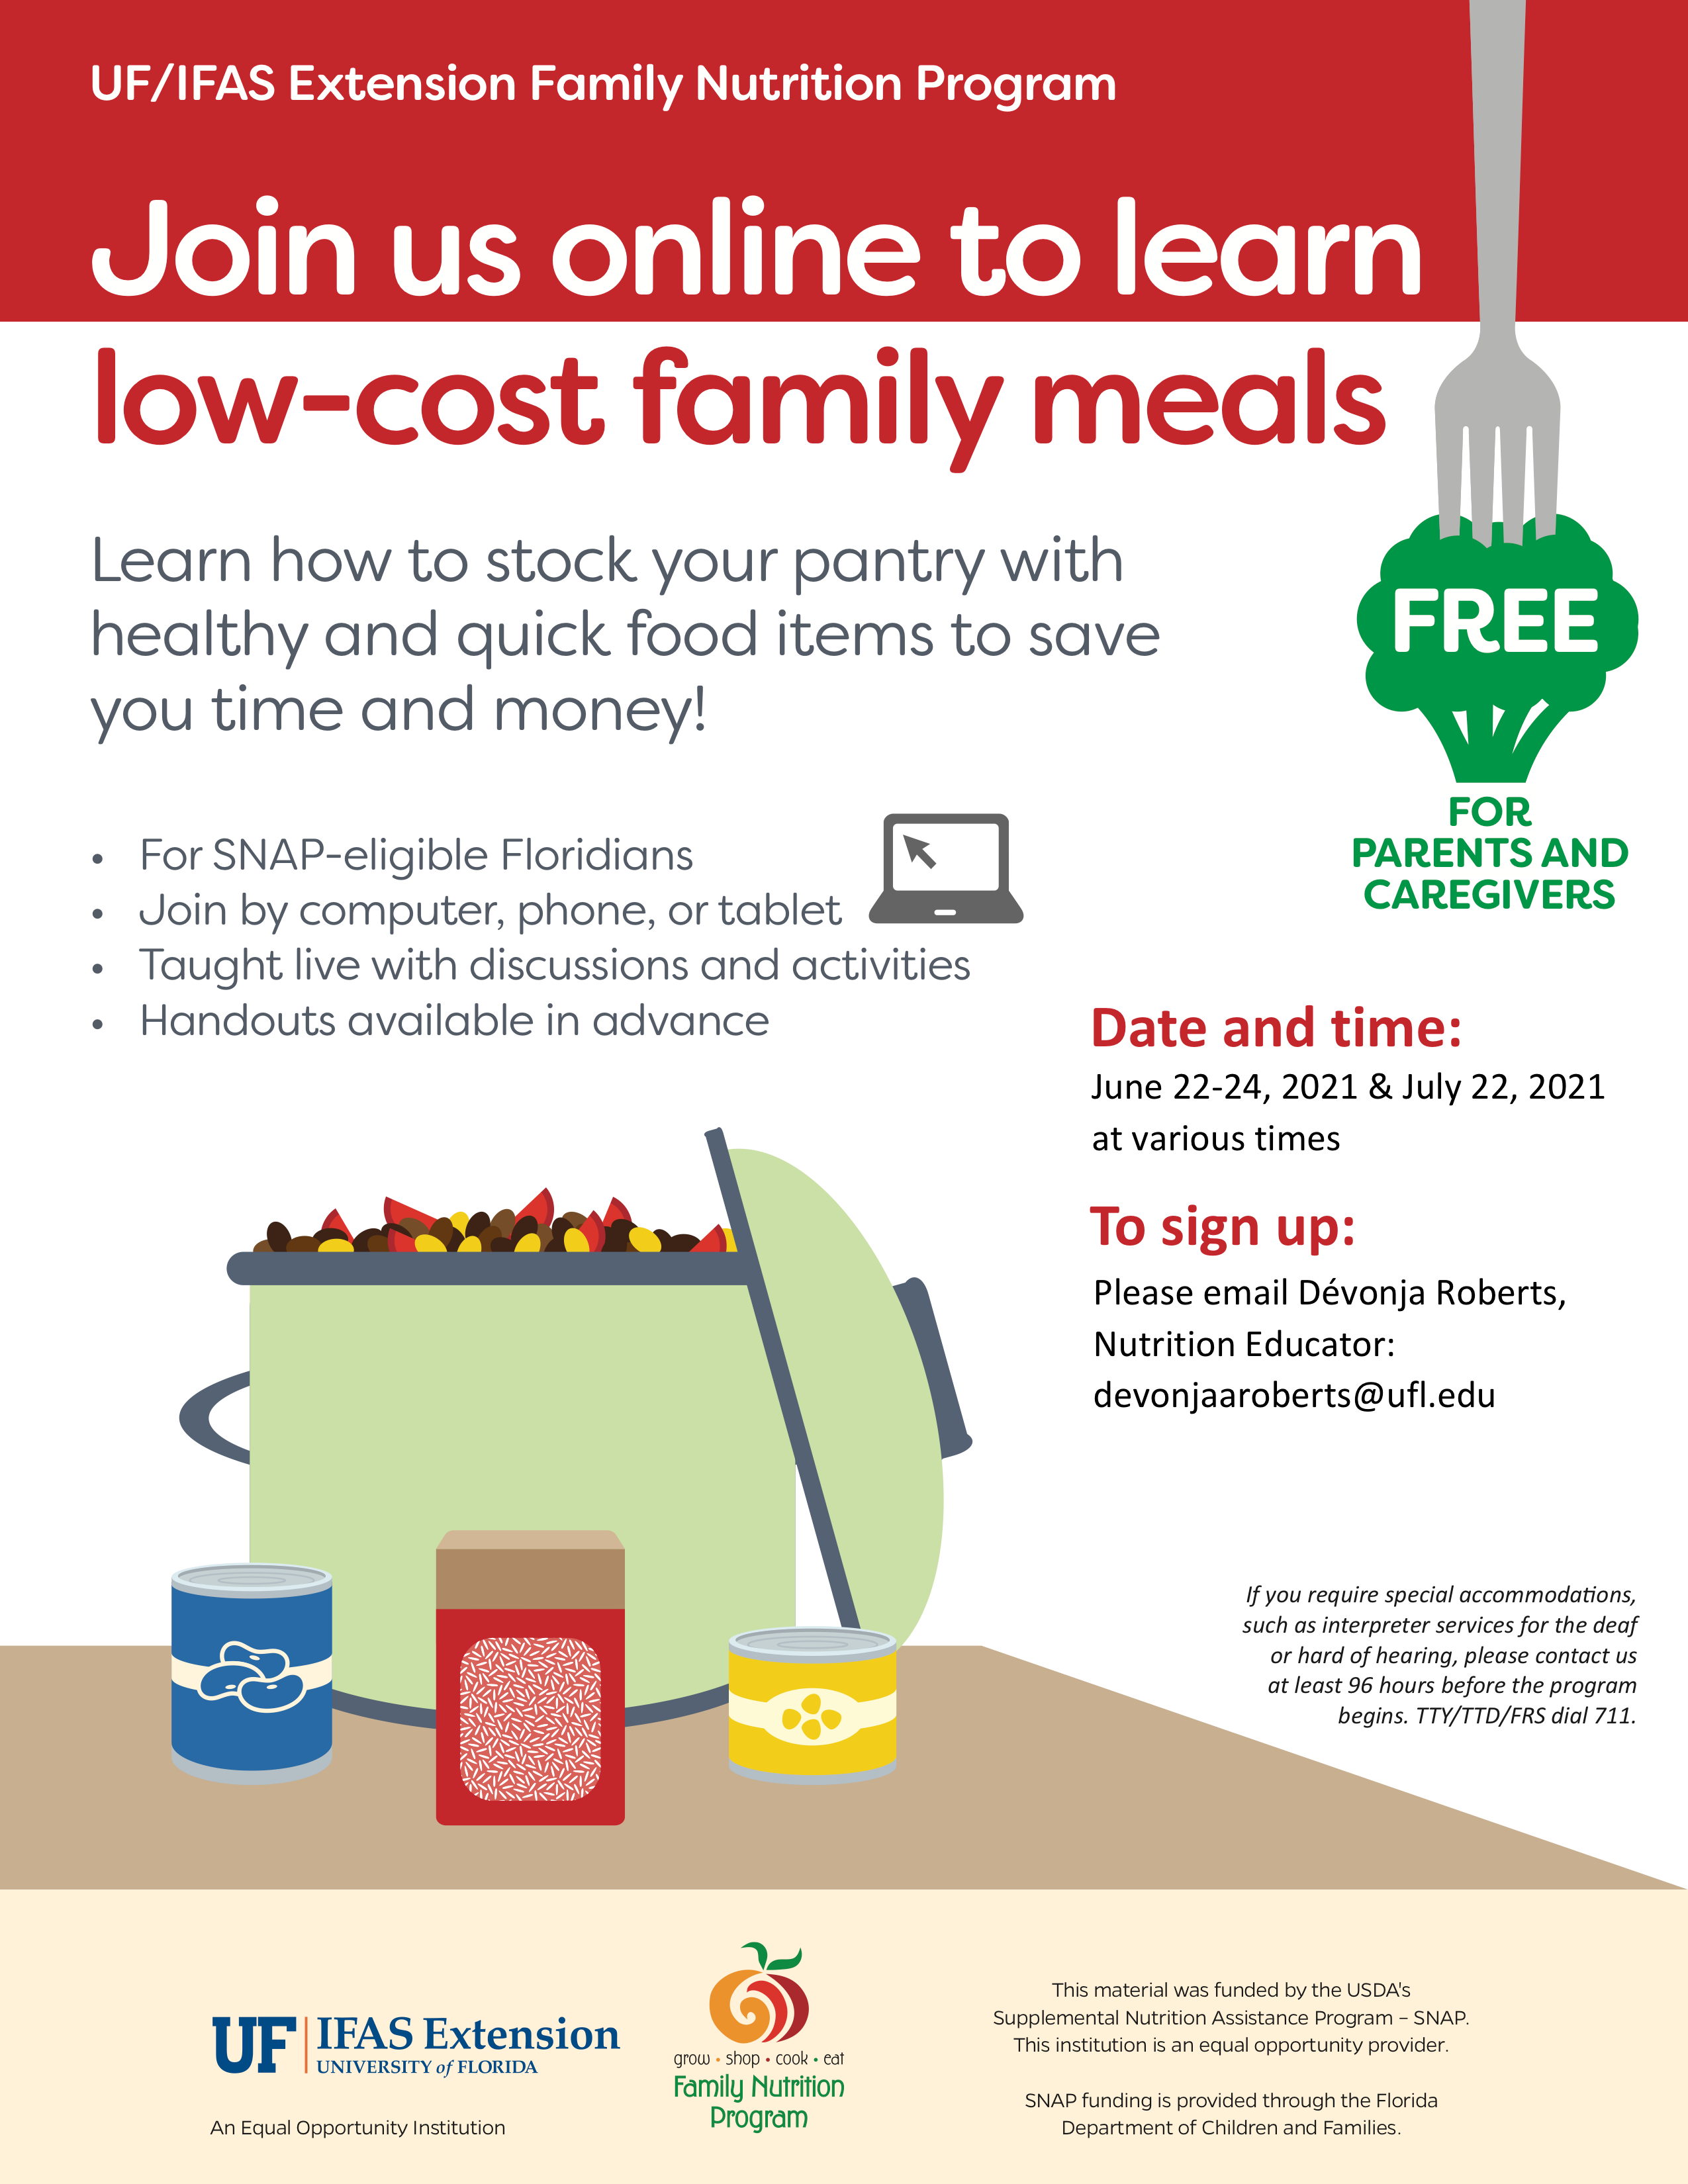 A flyer for a free online session to learn how to cook low-cost family meals